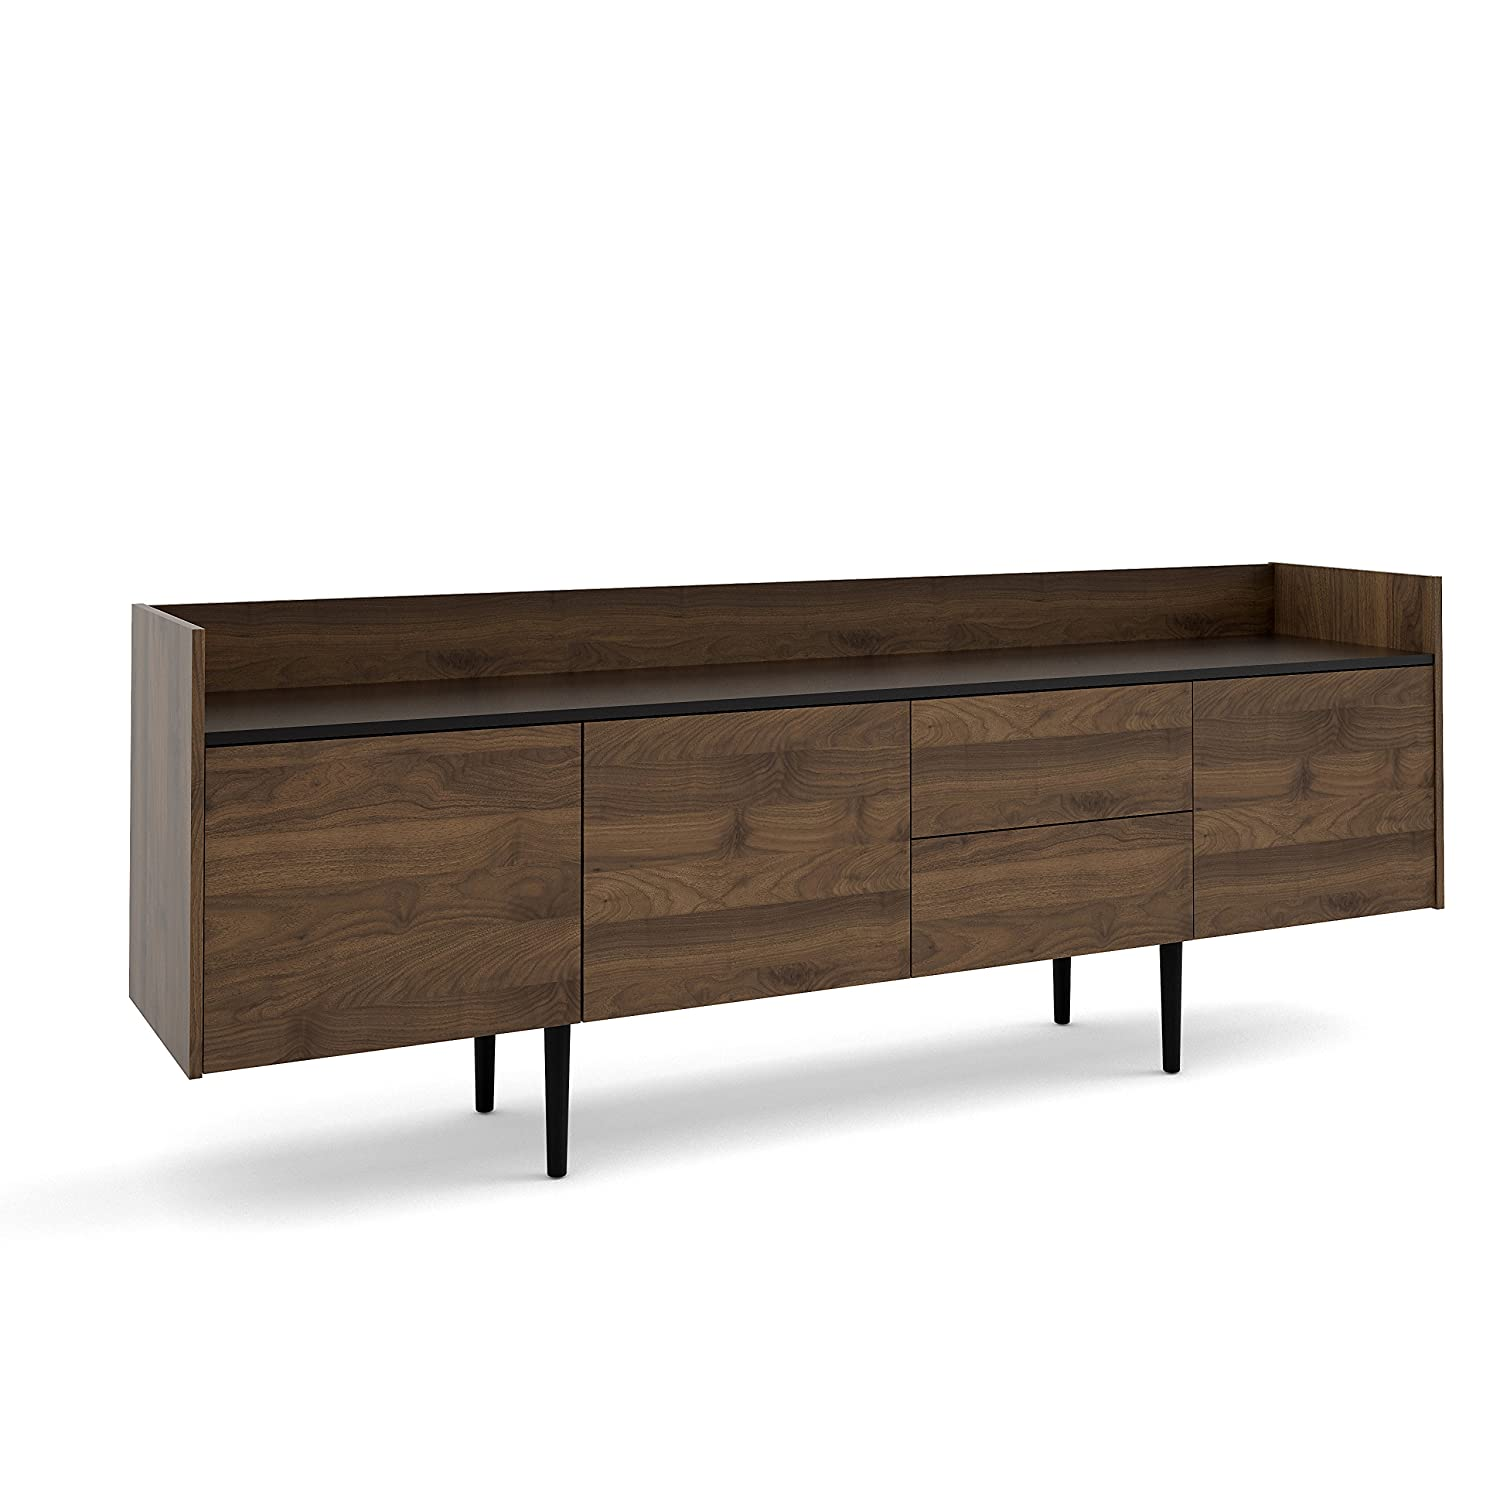 Tvilum Unit 2 Drawer 3 Door Sideboard, Walnut Black